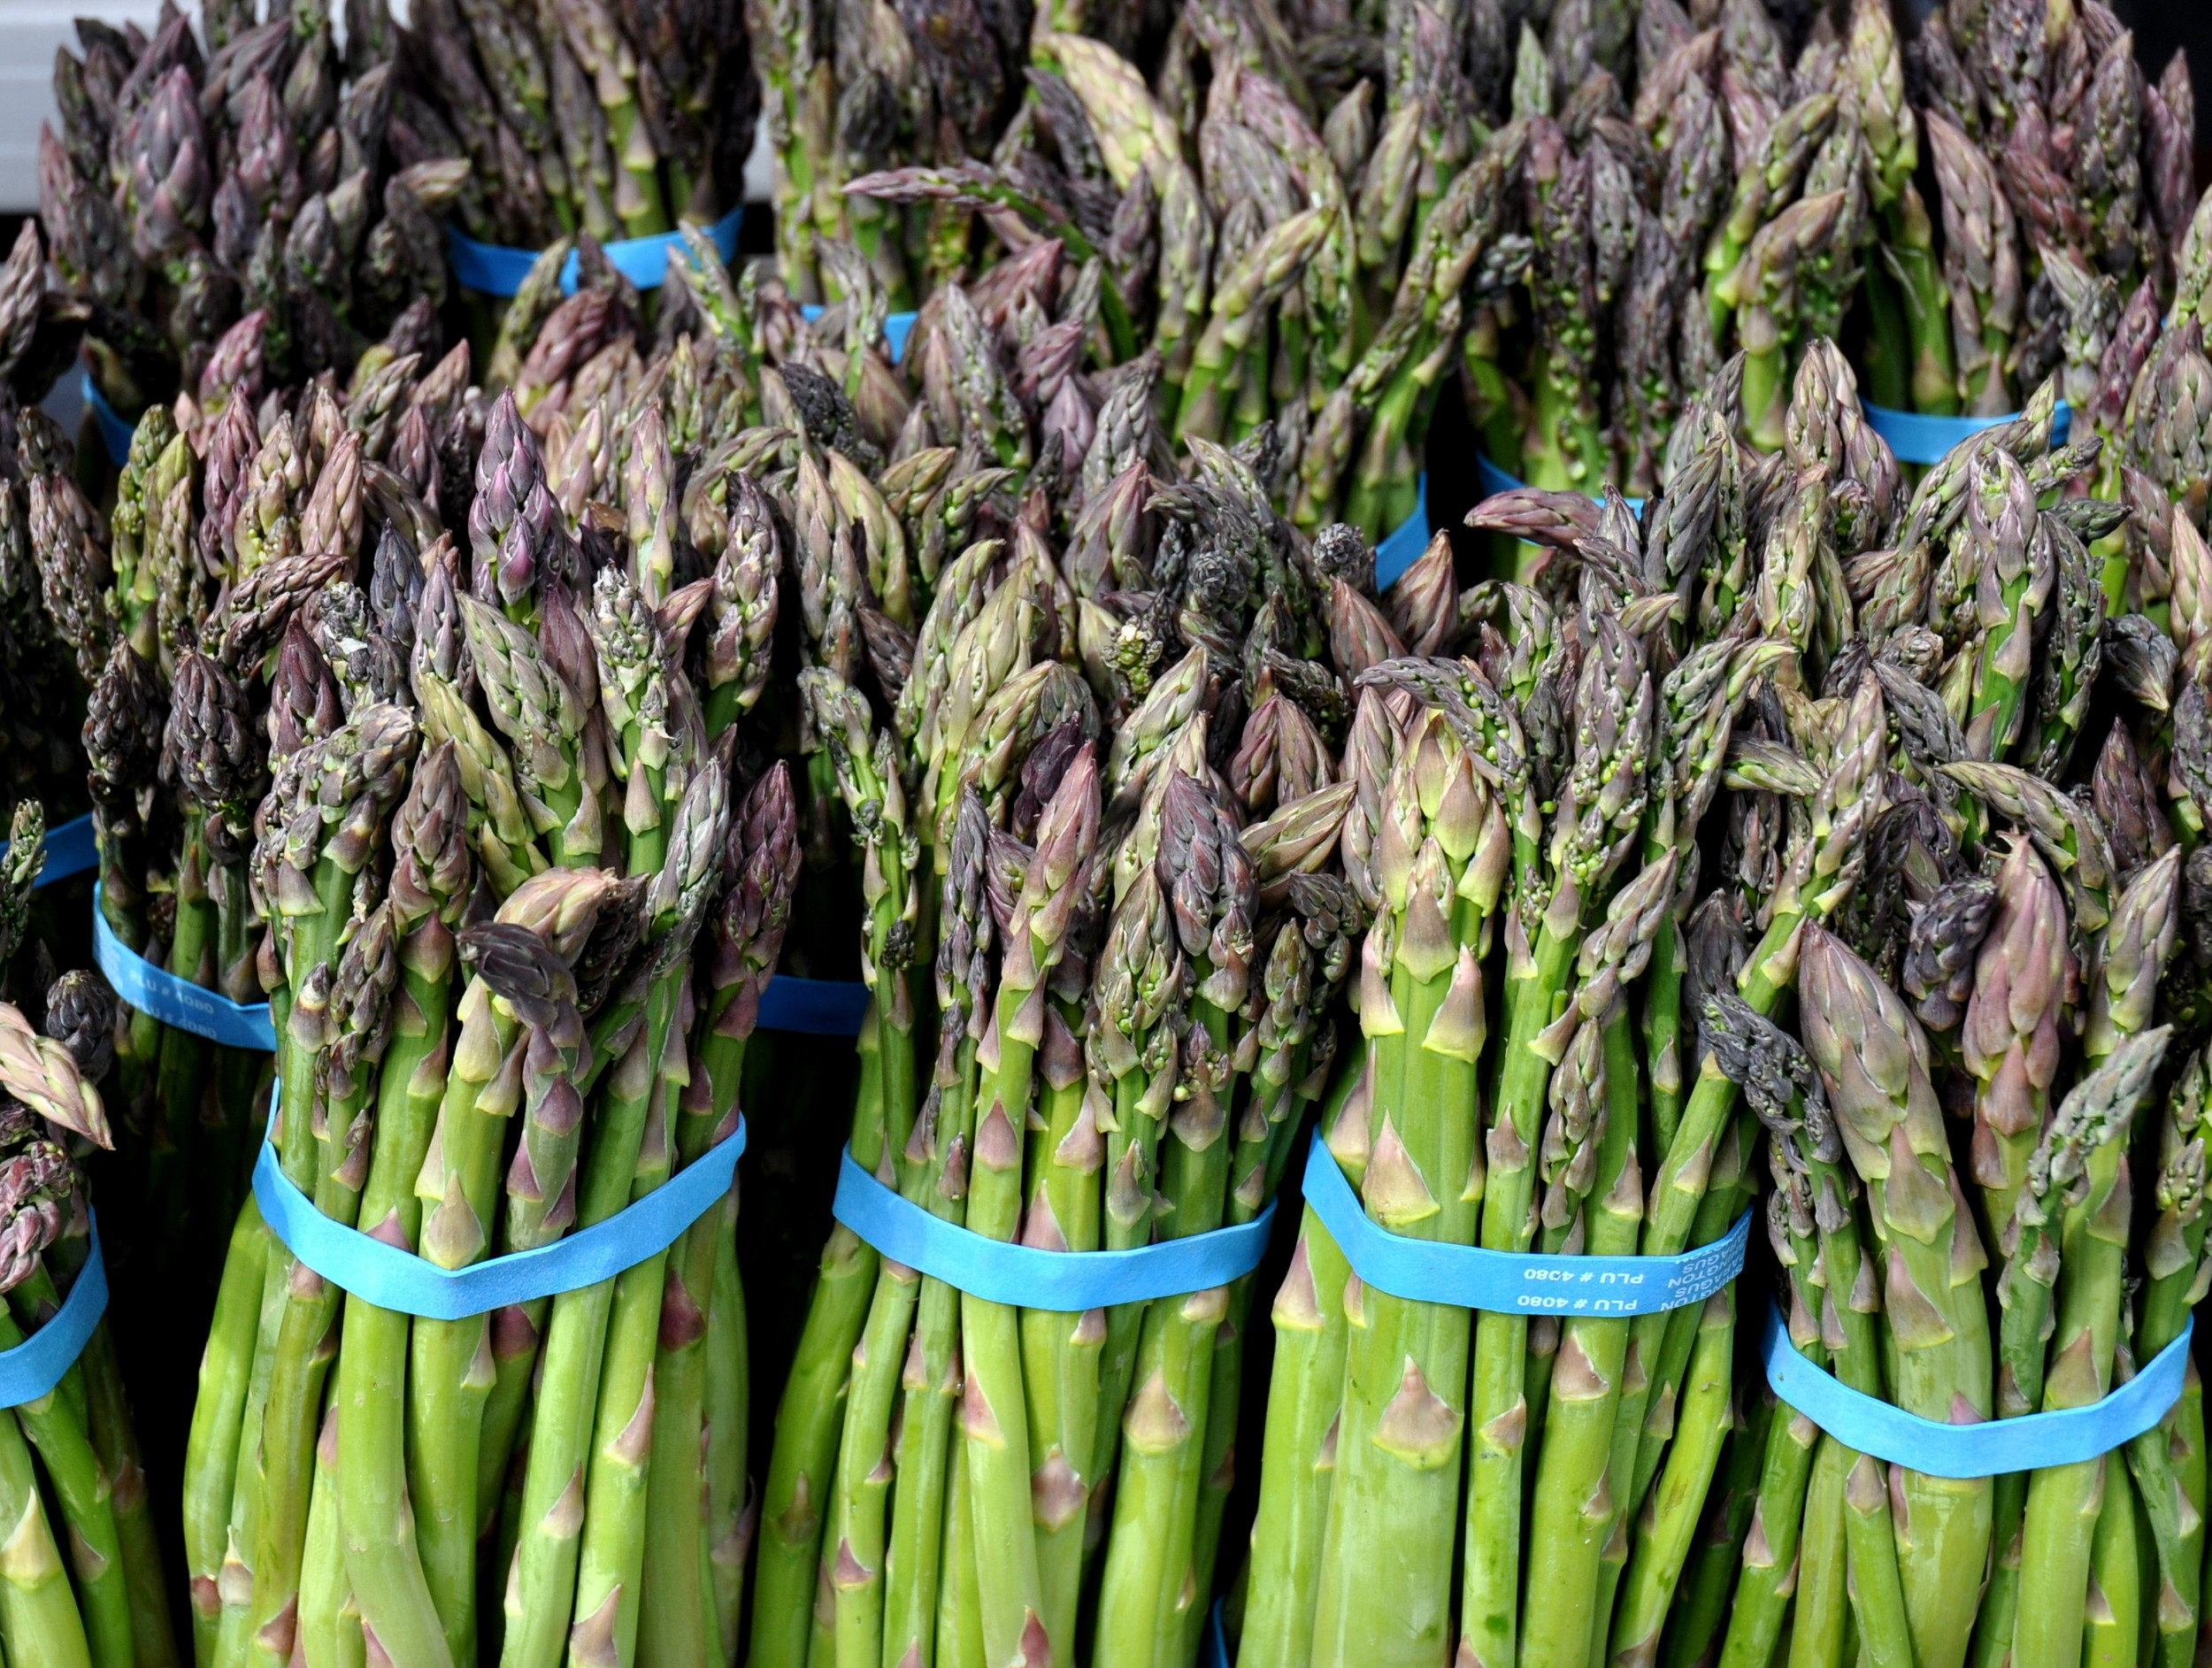 Asparagus from Collins Family Orchards. Photo copyright 2013 by Zachary D. Lyons.